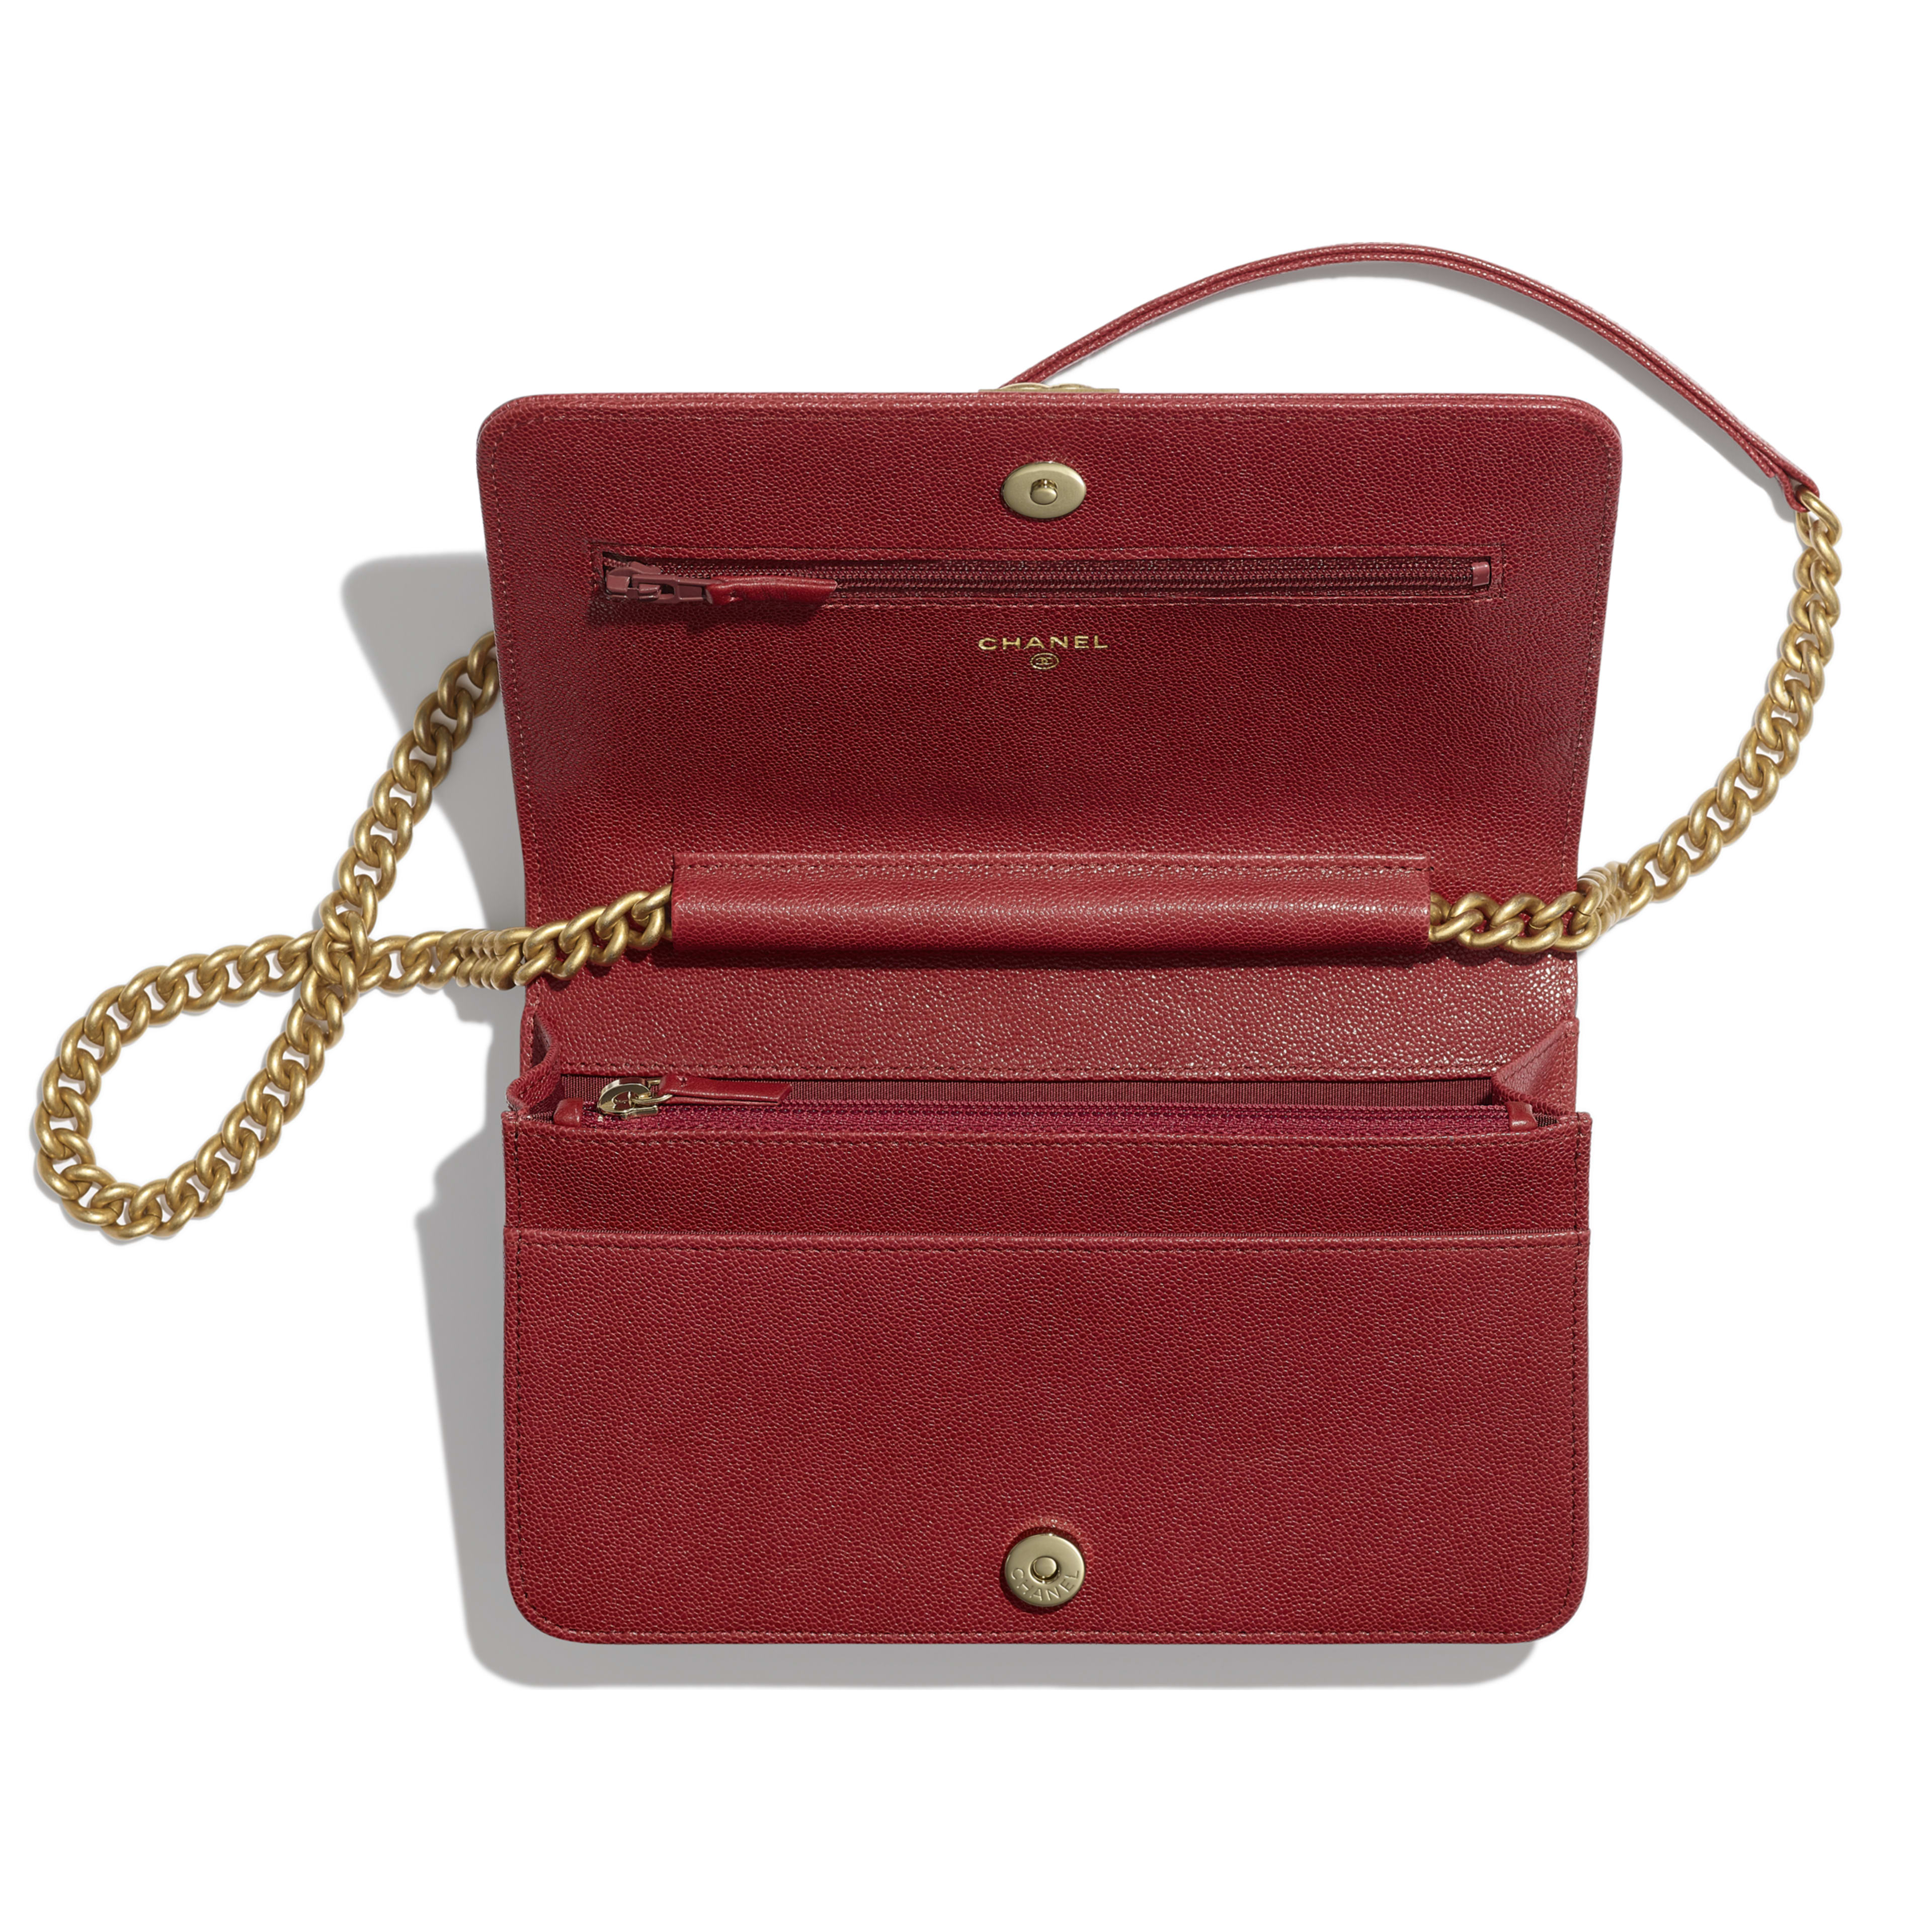 BOY CHANEL Wallet on Chain - Red - Grained Calfskin & Gold-Tone Metal - Other view - see full sized version